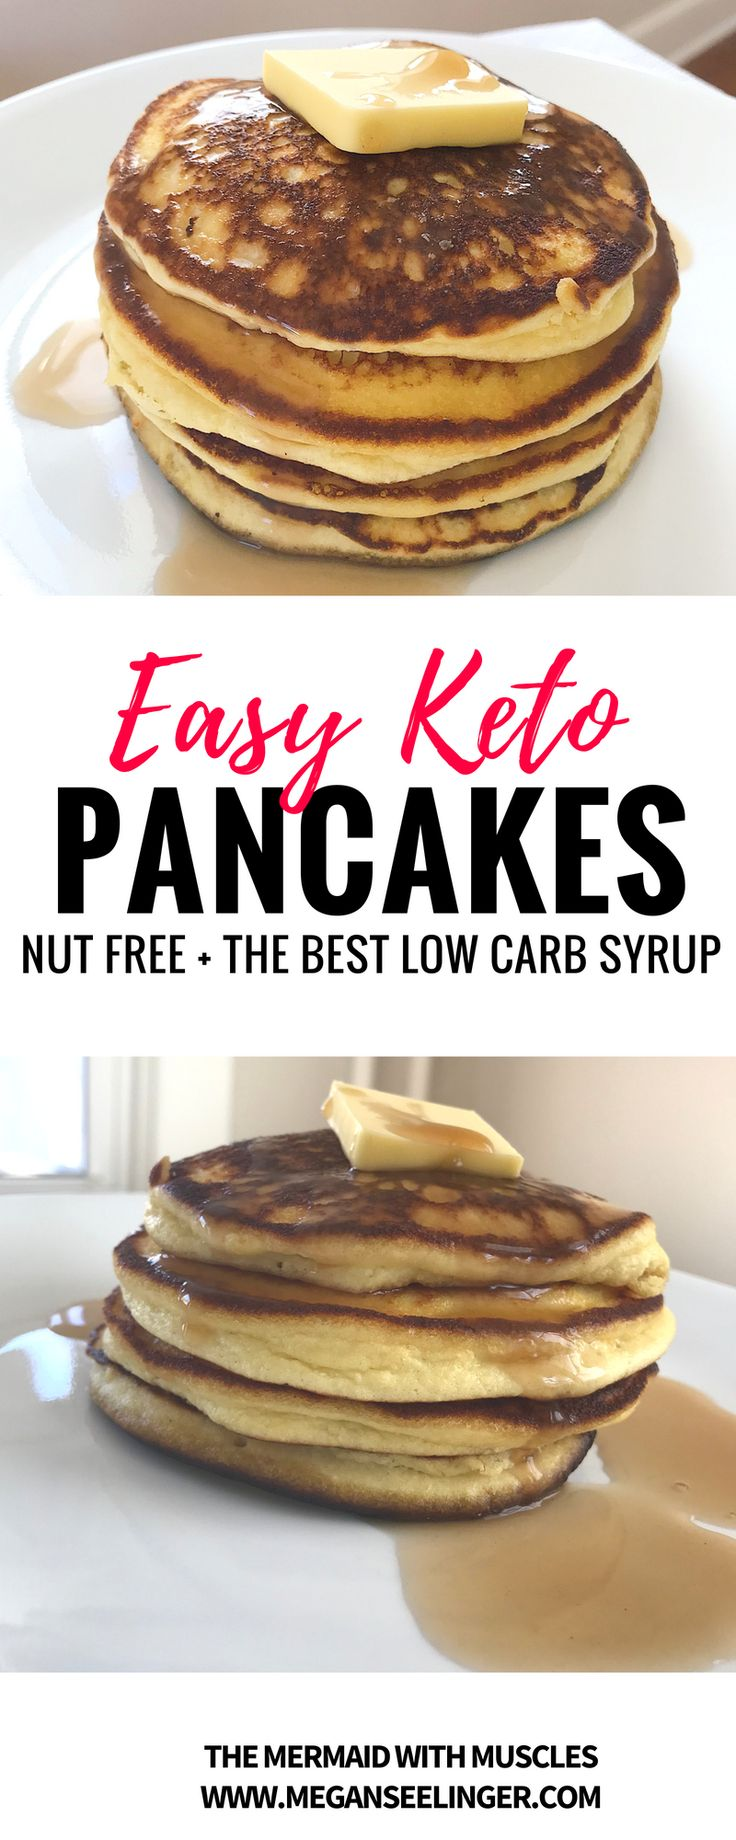 The Best Keto Pancakes Recipe With Coconut FlourThe Mermaid With Muscles// Workout Plans, Motivation, Keto Recipes